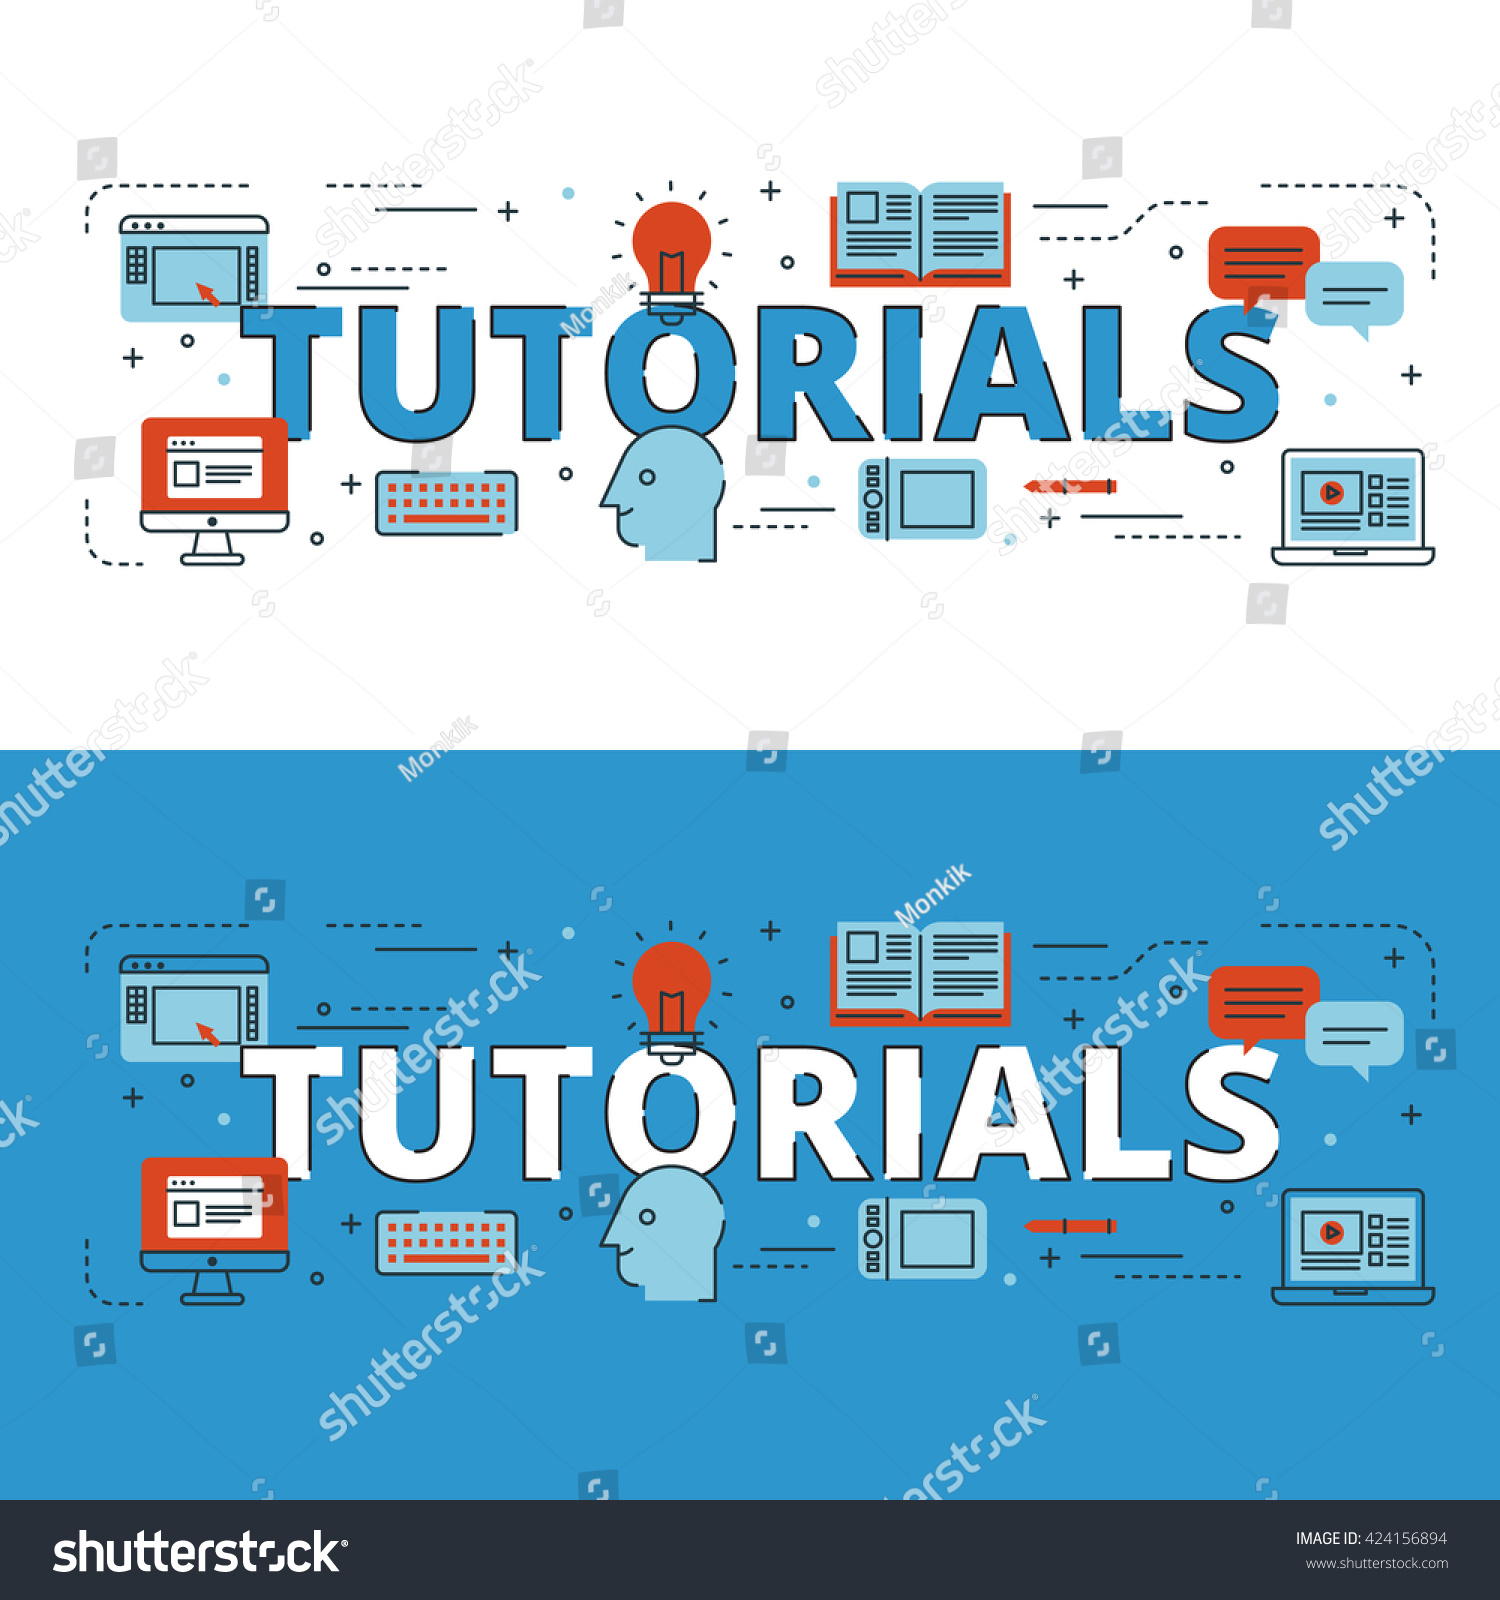 Book Cover Design Tutorial In Photo ~ Tutorials lettering flat line design icons stock vector royalty